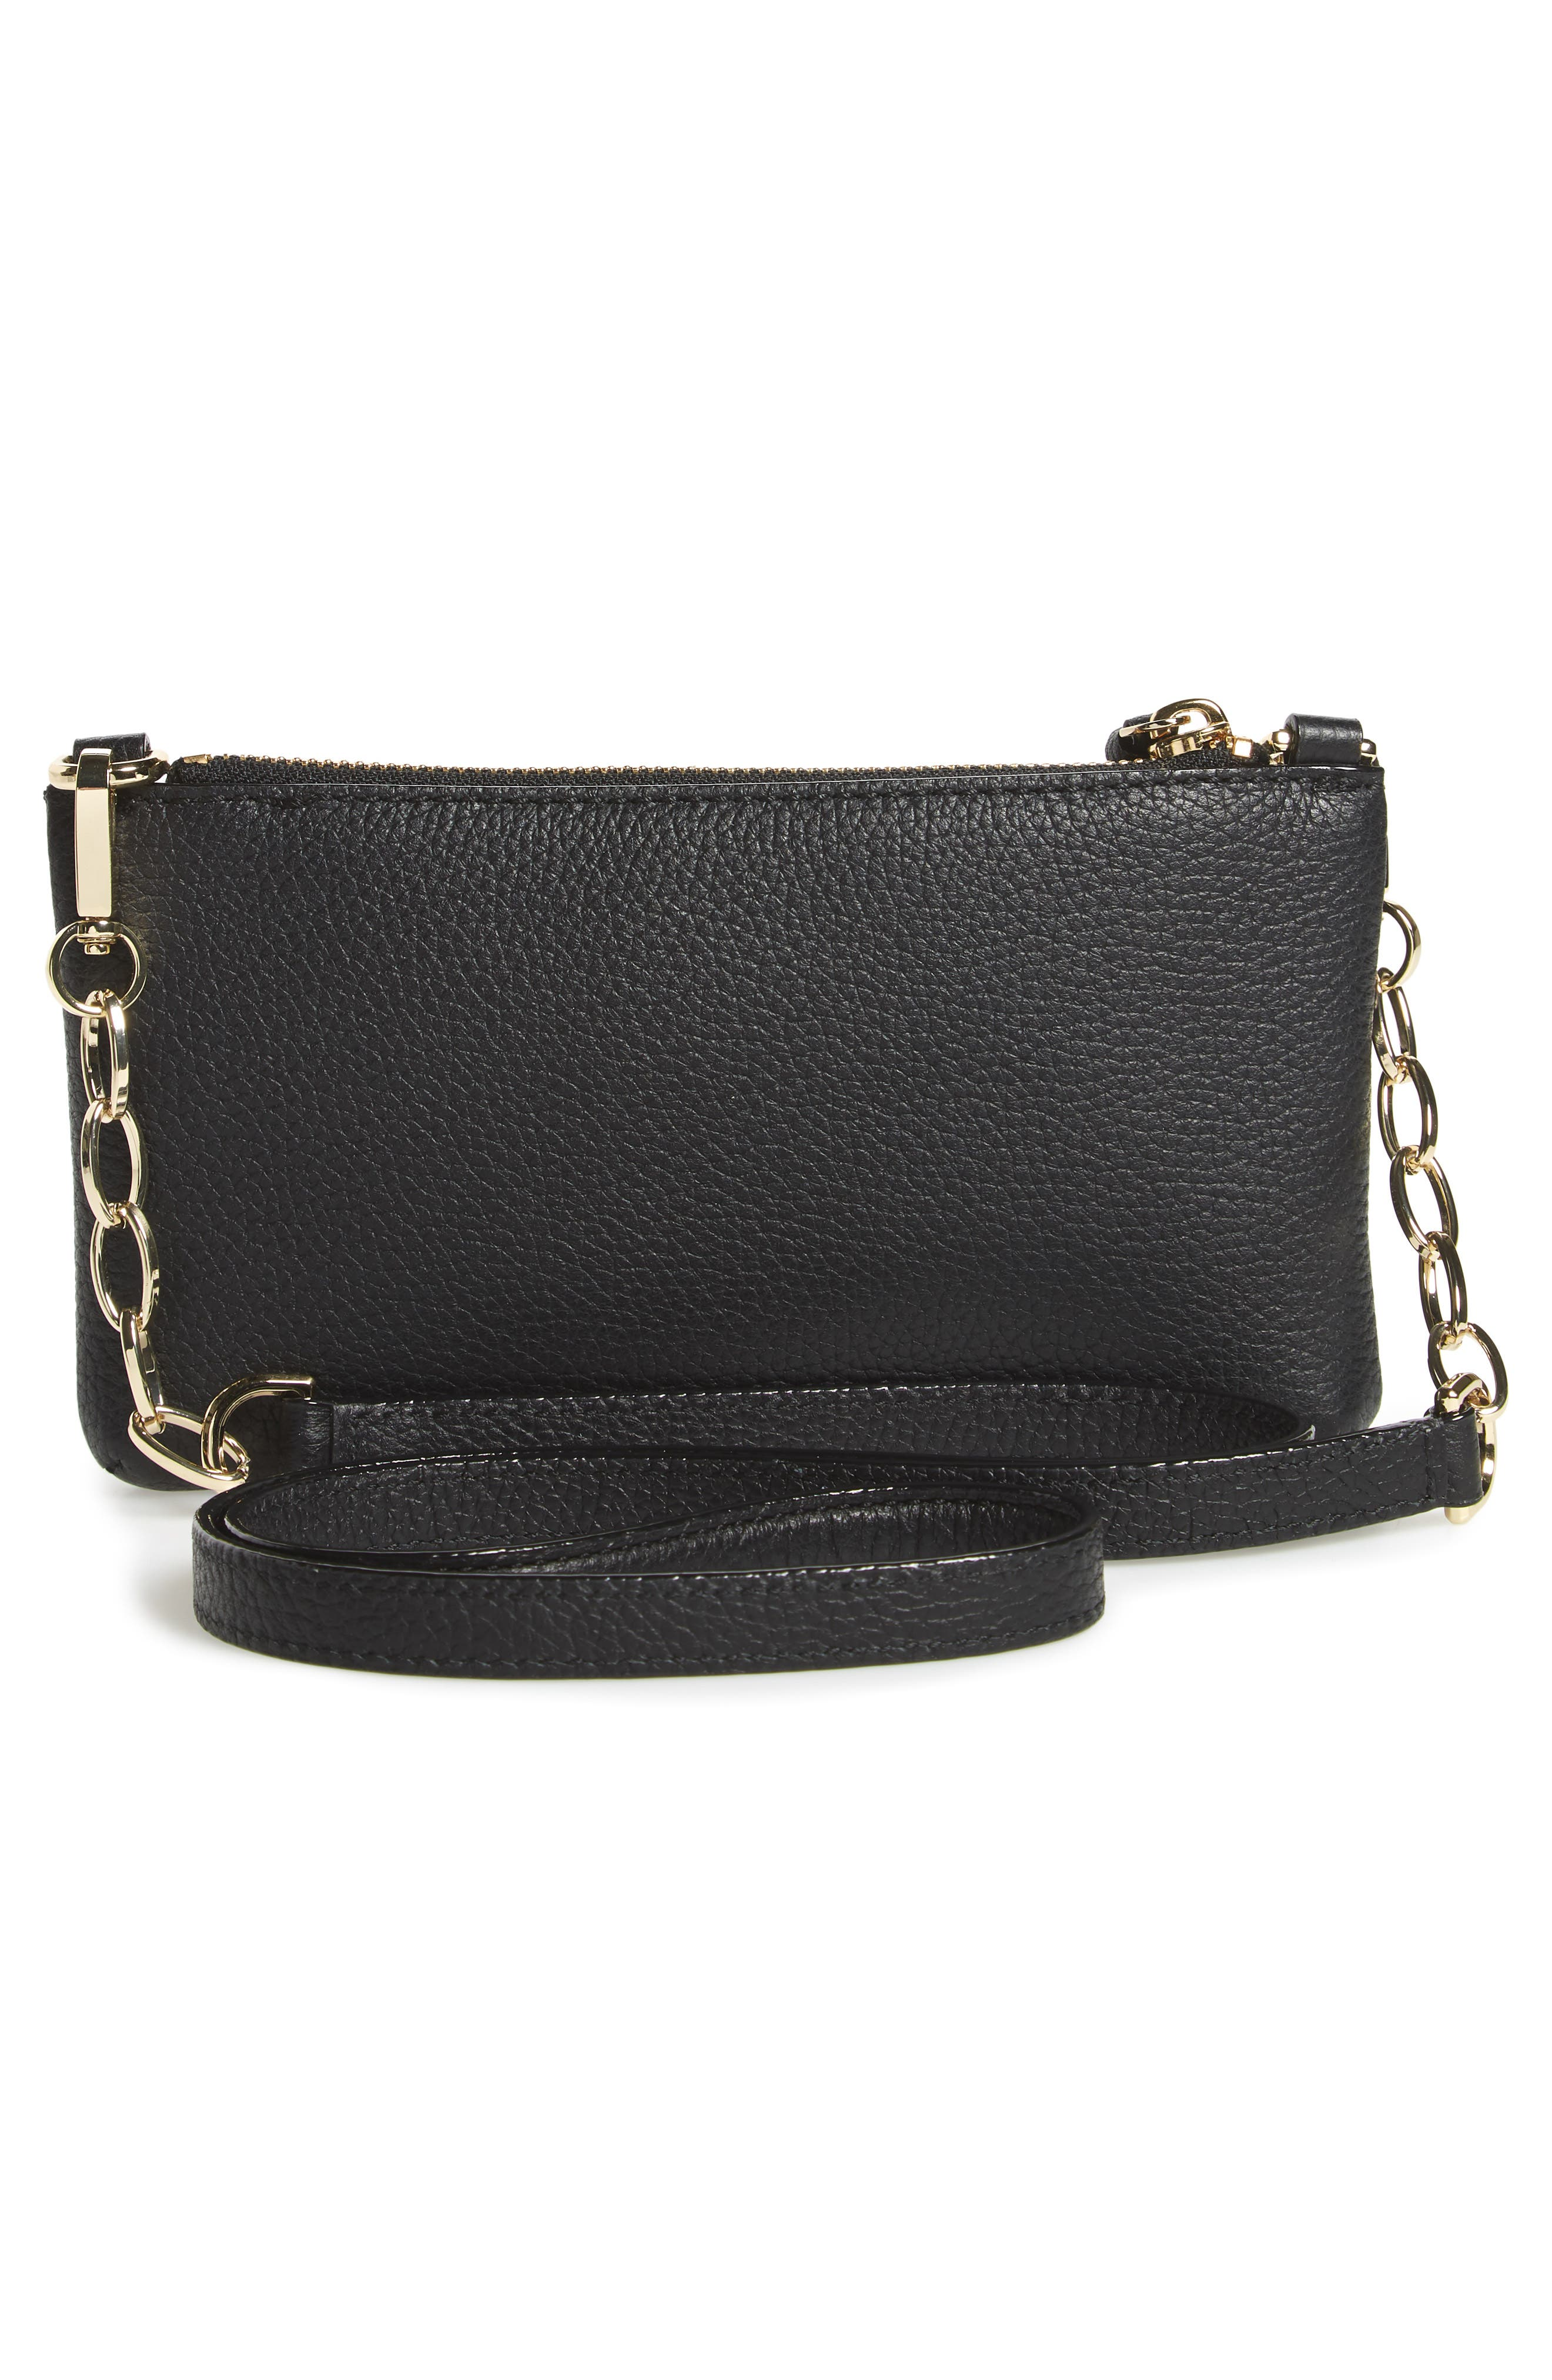 jackson street – dolores leather crossbody bag,                             Alternate thumbnail 3, color,                             Black